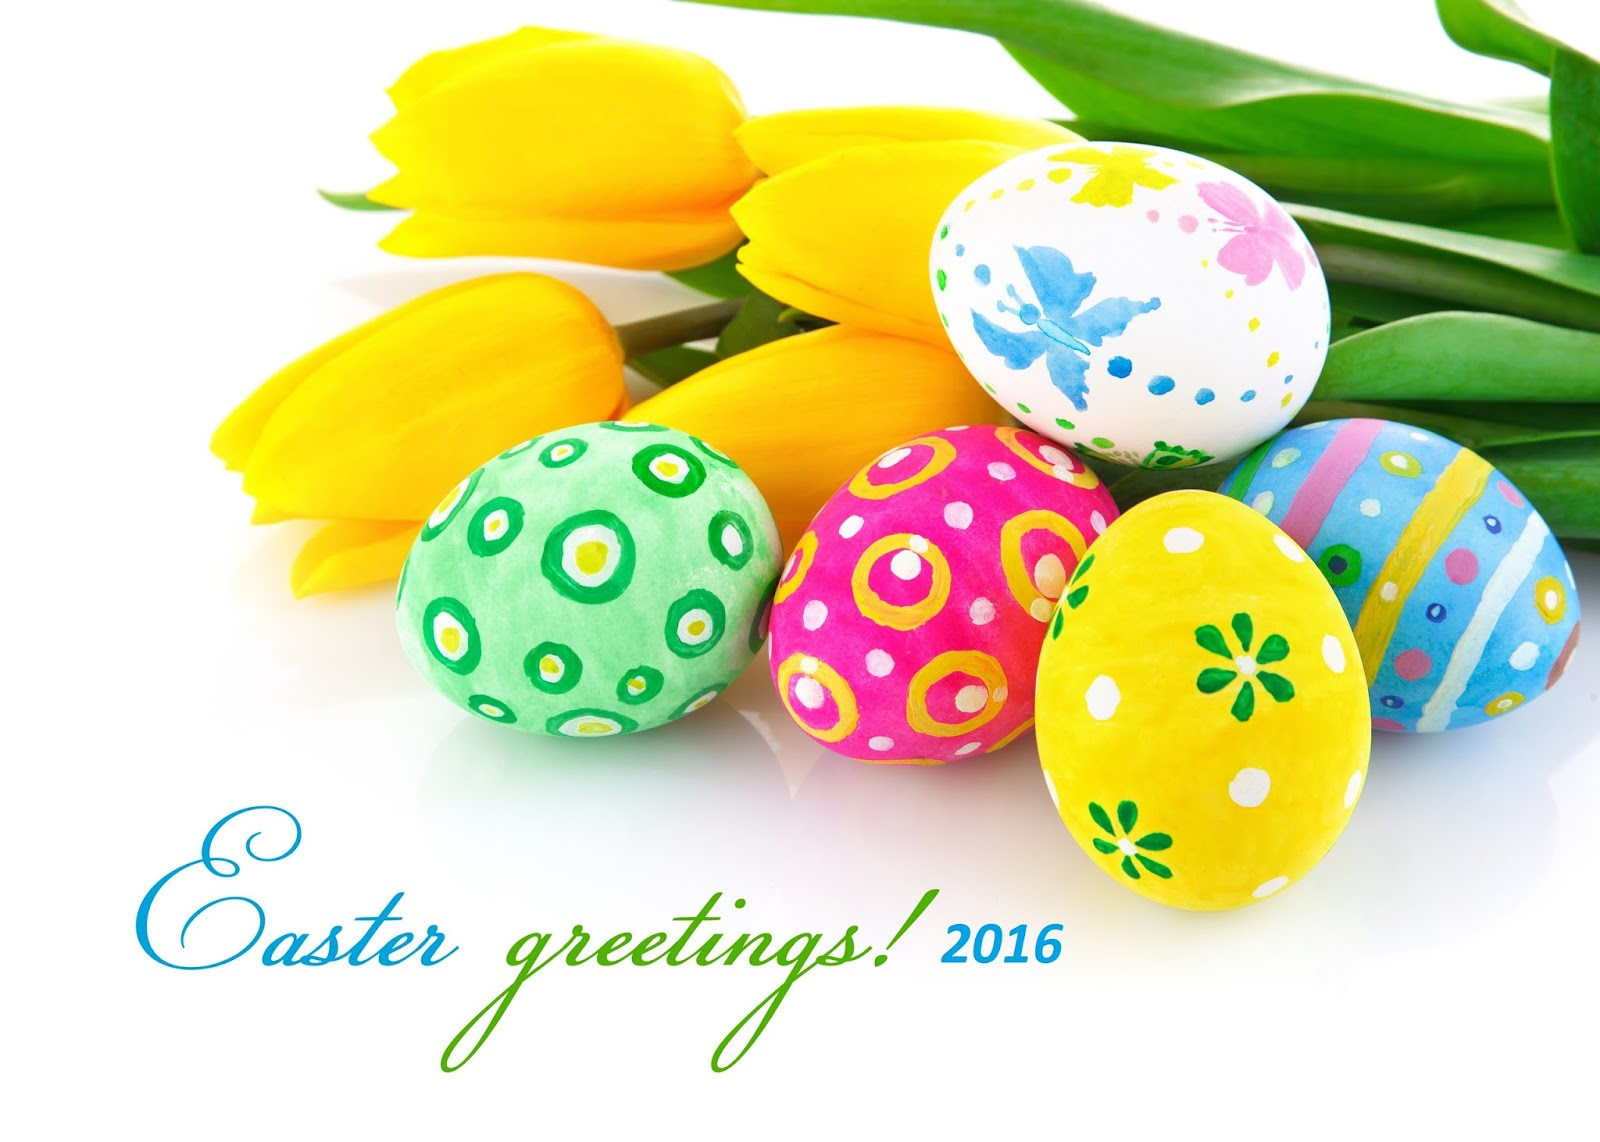 Happy Easter 2017 Good Friday Wishes Greetings Cards Quotes Holidays